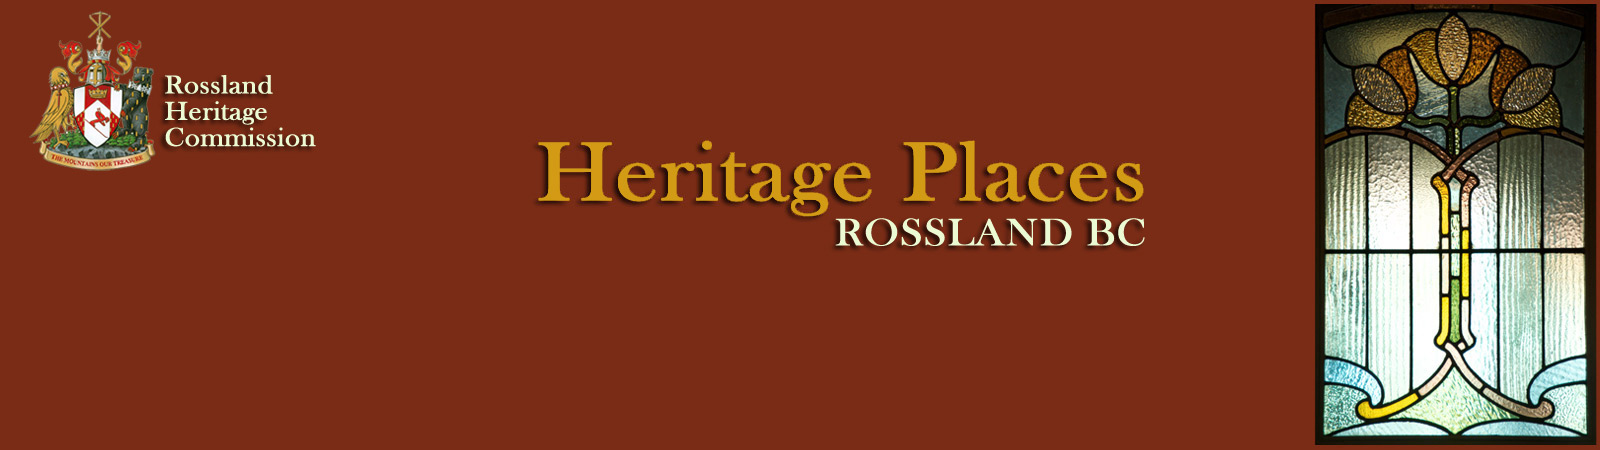 Rossland Heritage Commission - Heritage Places -main page banner